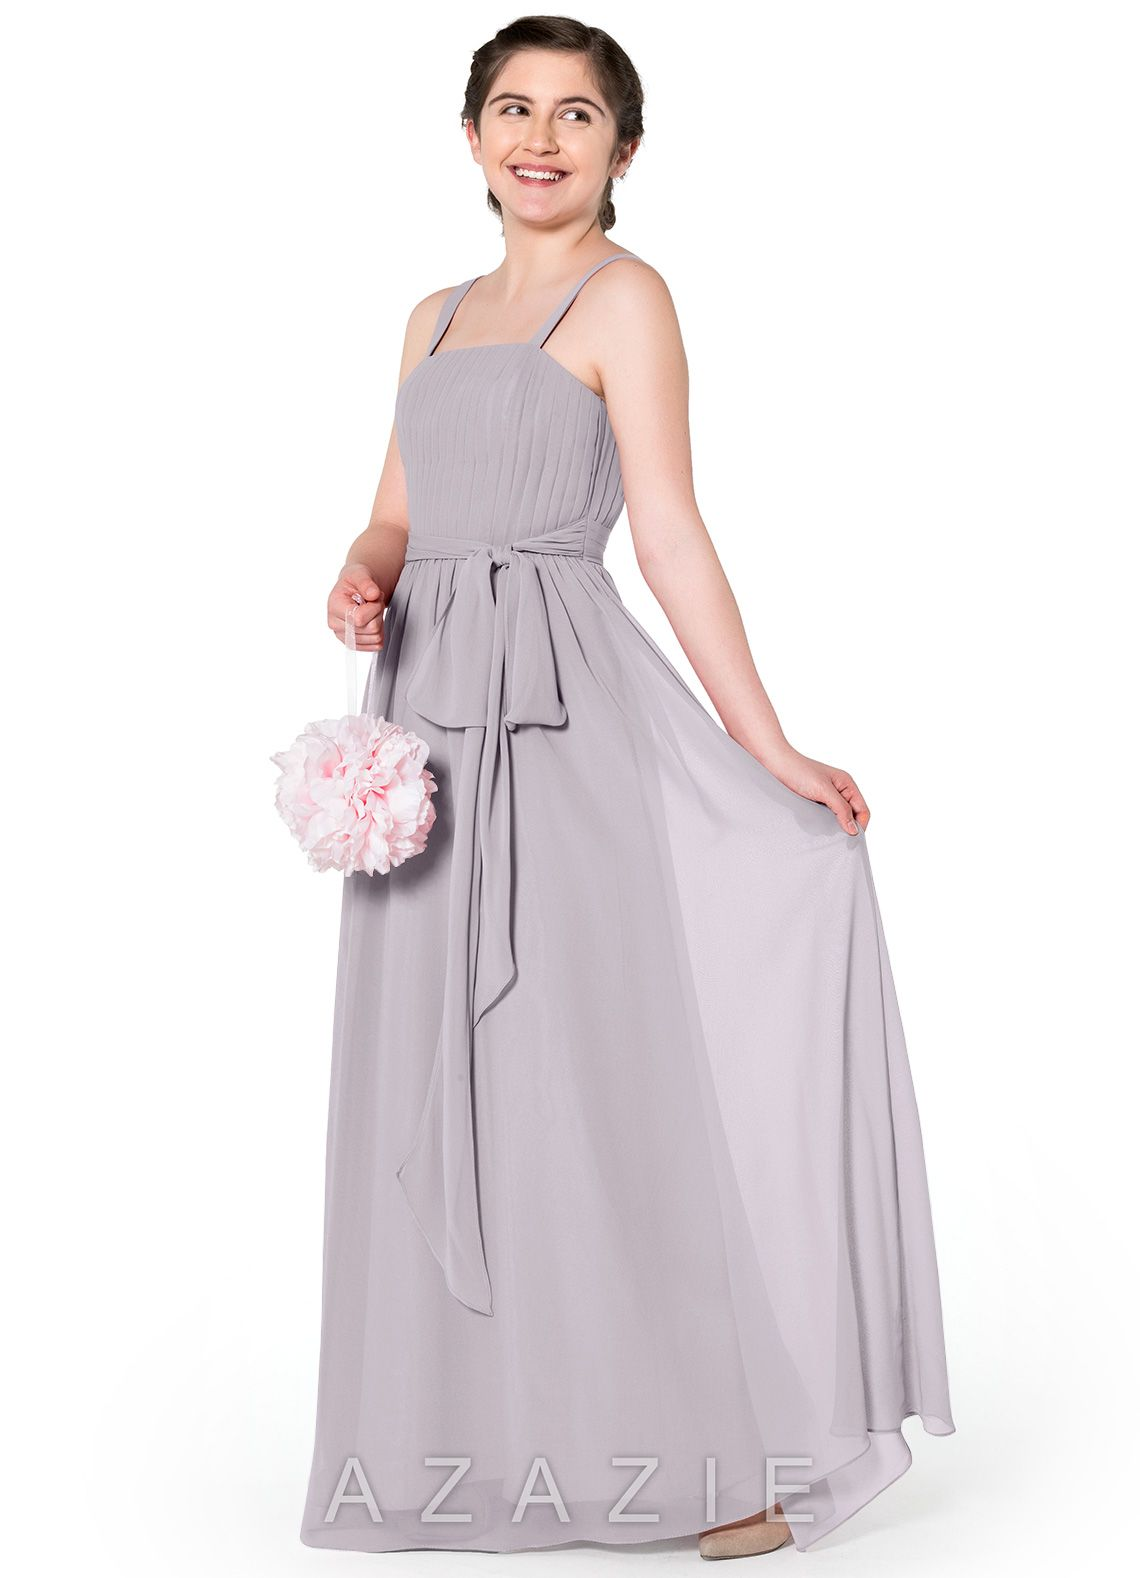 Azazie Ellie JBD Junior Bridesmaid Dress